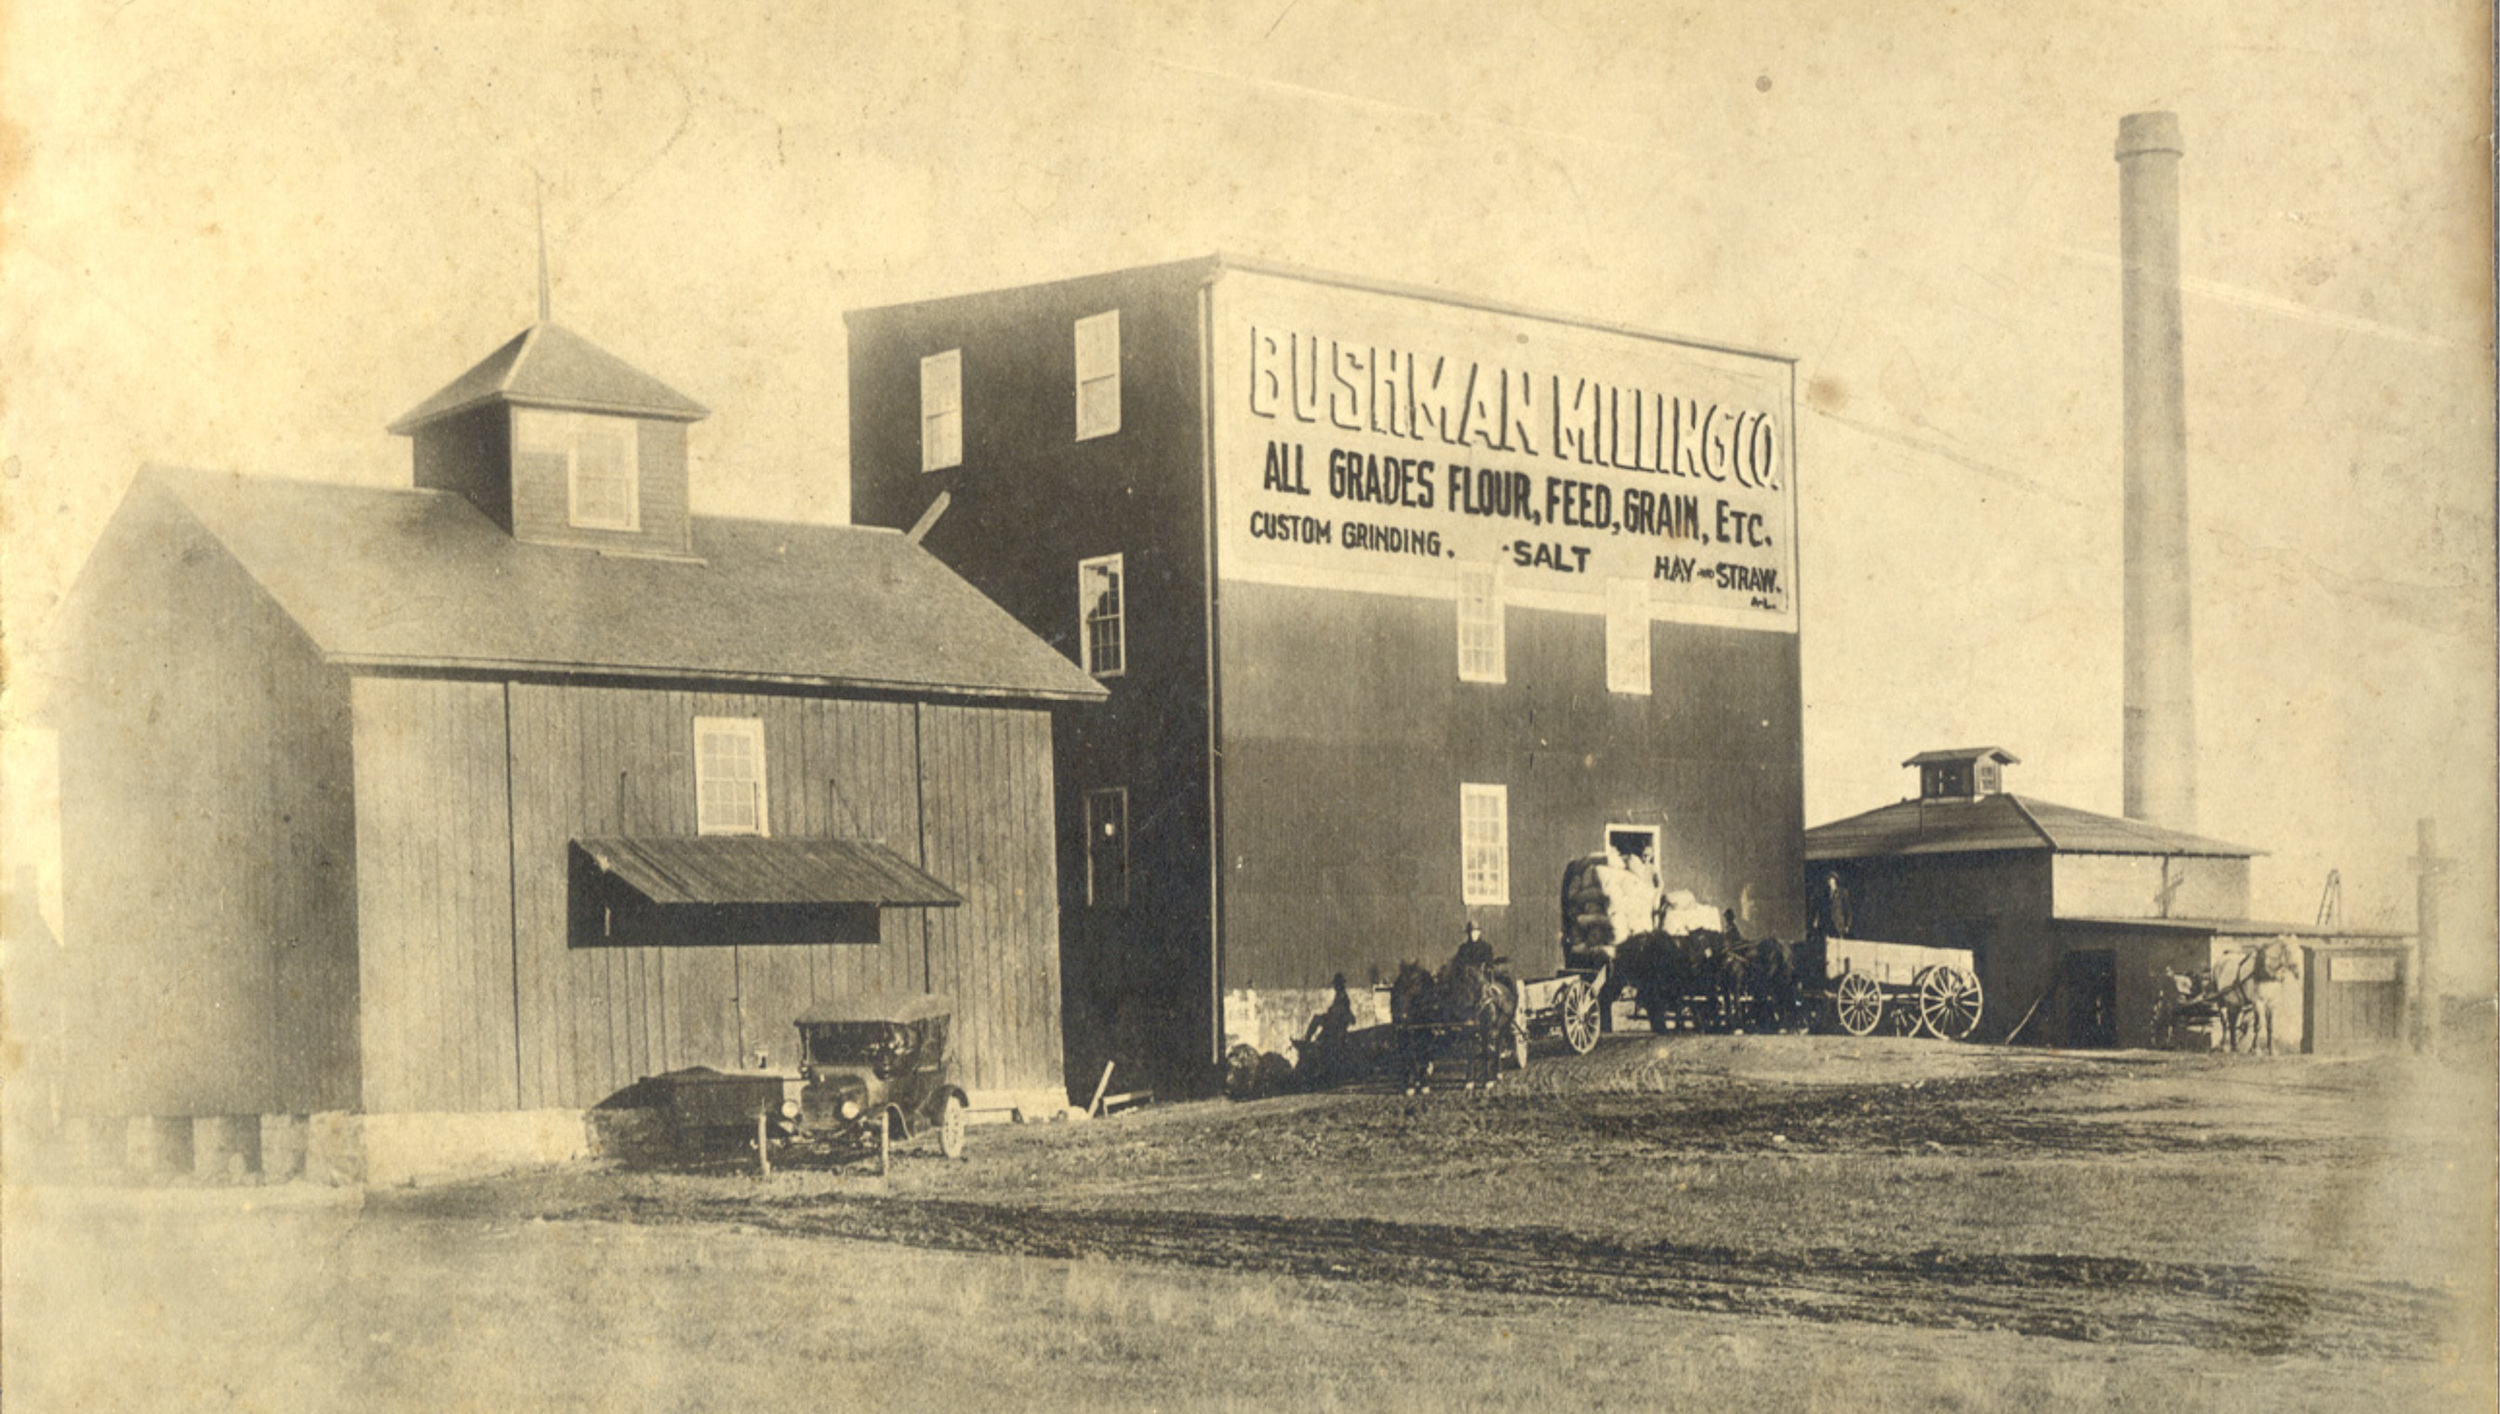 """The Bay View Roller Mill was established in 1885 by Charles Whiteside, L.C. Thorkildson, & A. Shaw on what was then the shore of the bay. In 1899 the adjoining granary on the left was brought to this site by water from Little Sturgeon in the southern part of Door County. The picture (ca. 1920) shows the mill when it was operated by the Bushman Milling Co.  A mainstay of the Sturgeon Bay waterfront during the late 1800's and first half of the 20th century, the mill buildings were removed after the city acquired the property in 1975 for parkland. They stood in what is now the parking lot for the Sawyer Park Boat Launch."""